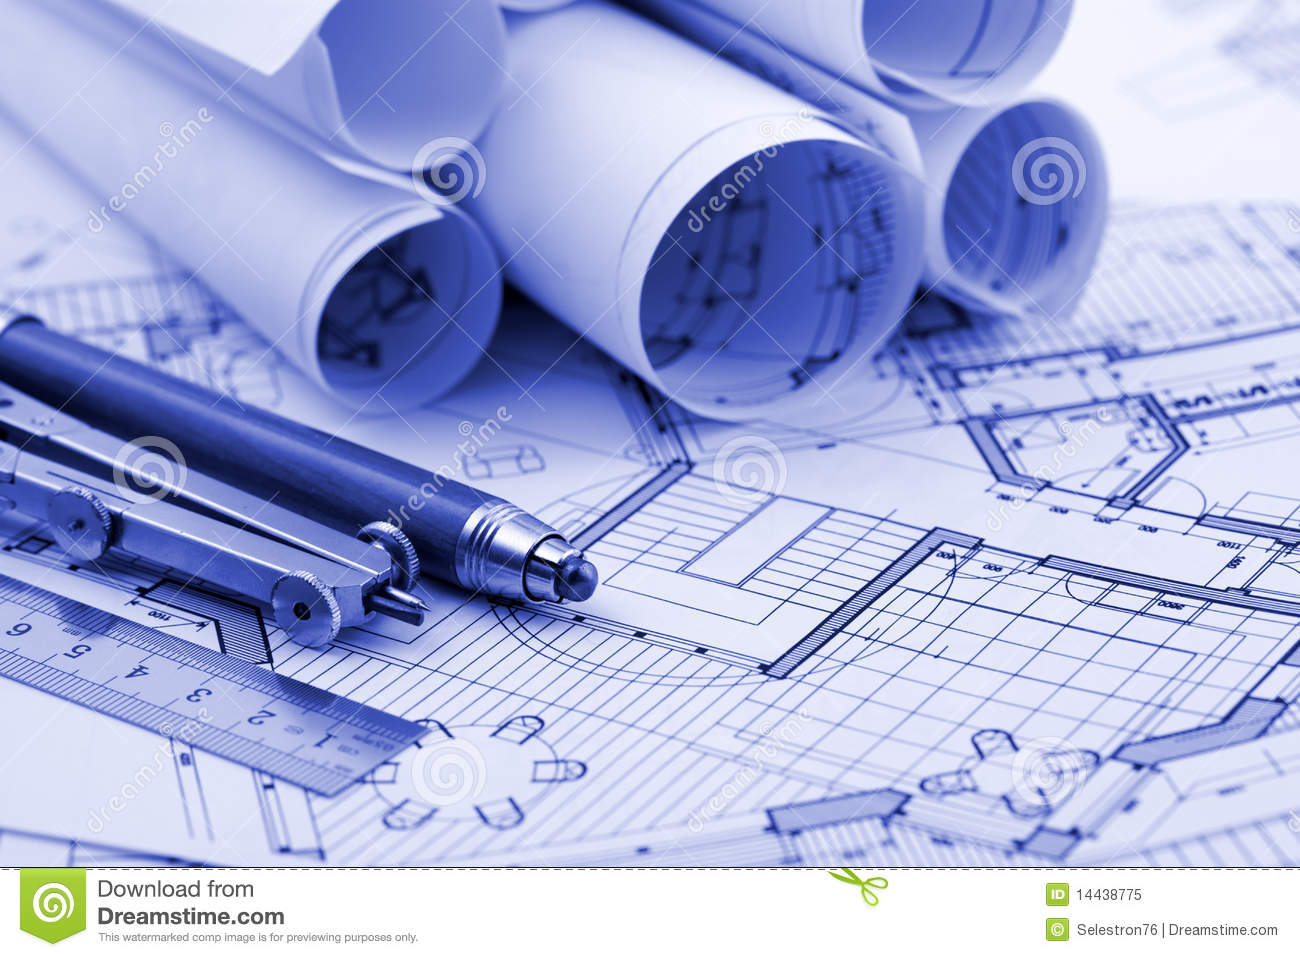 Architecture Blueprints Wallpaper rolls of architecture blueprint & work tools royalty free stock